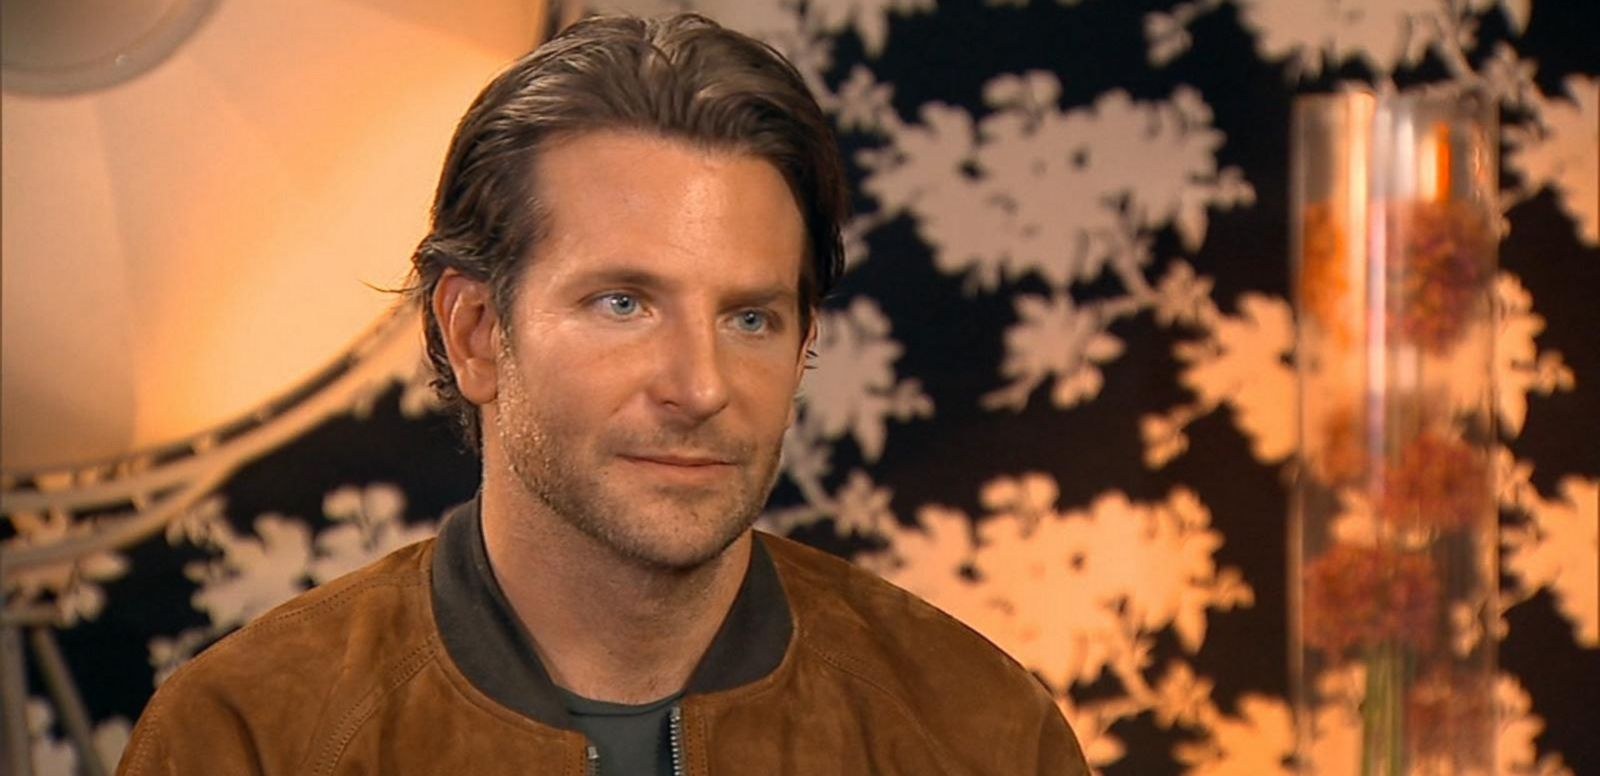 VIDEO: Bradley Cooper Details Life Through the Eyes of 'The Elephant Man'